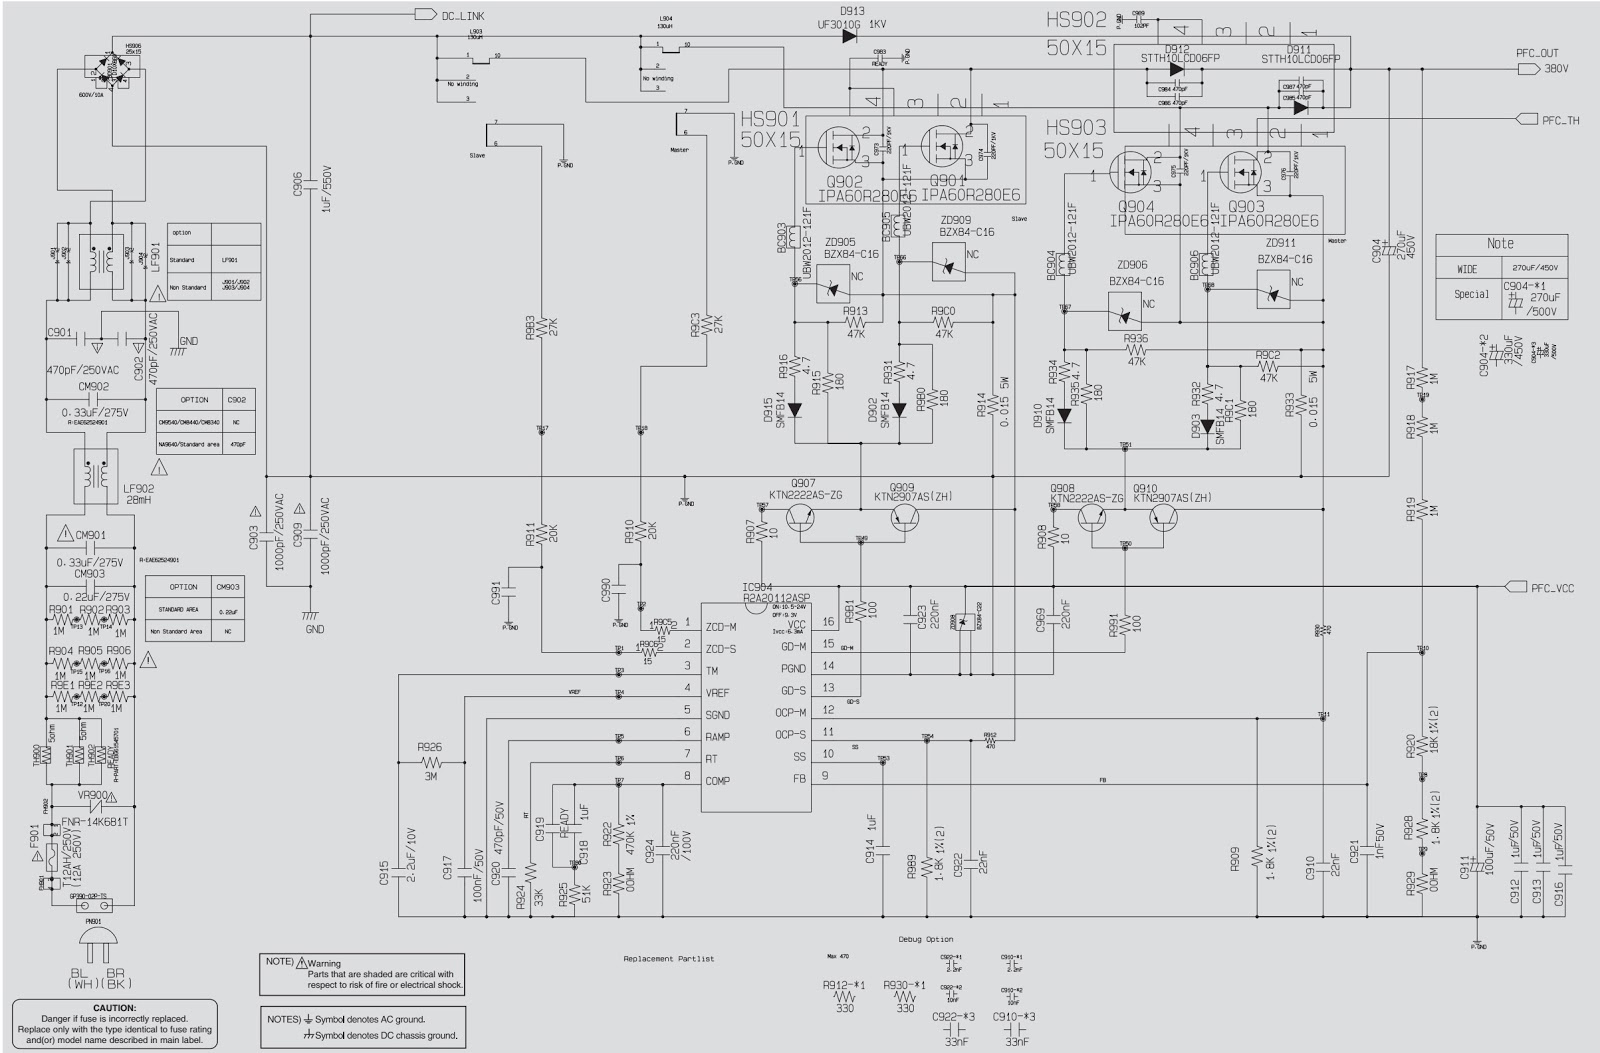 LG CM9550 SMPS and Power amplifier circuit diagram